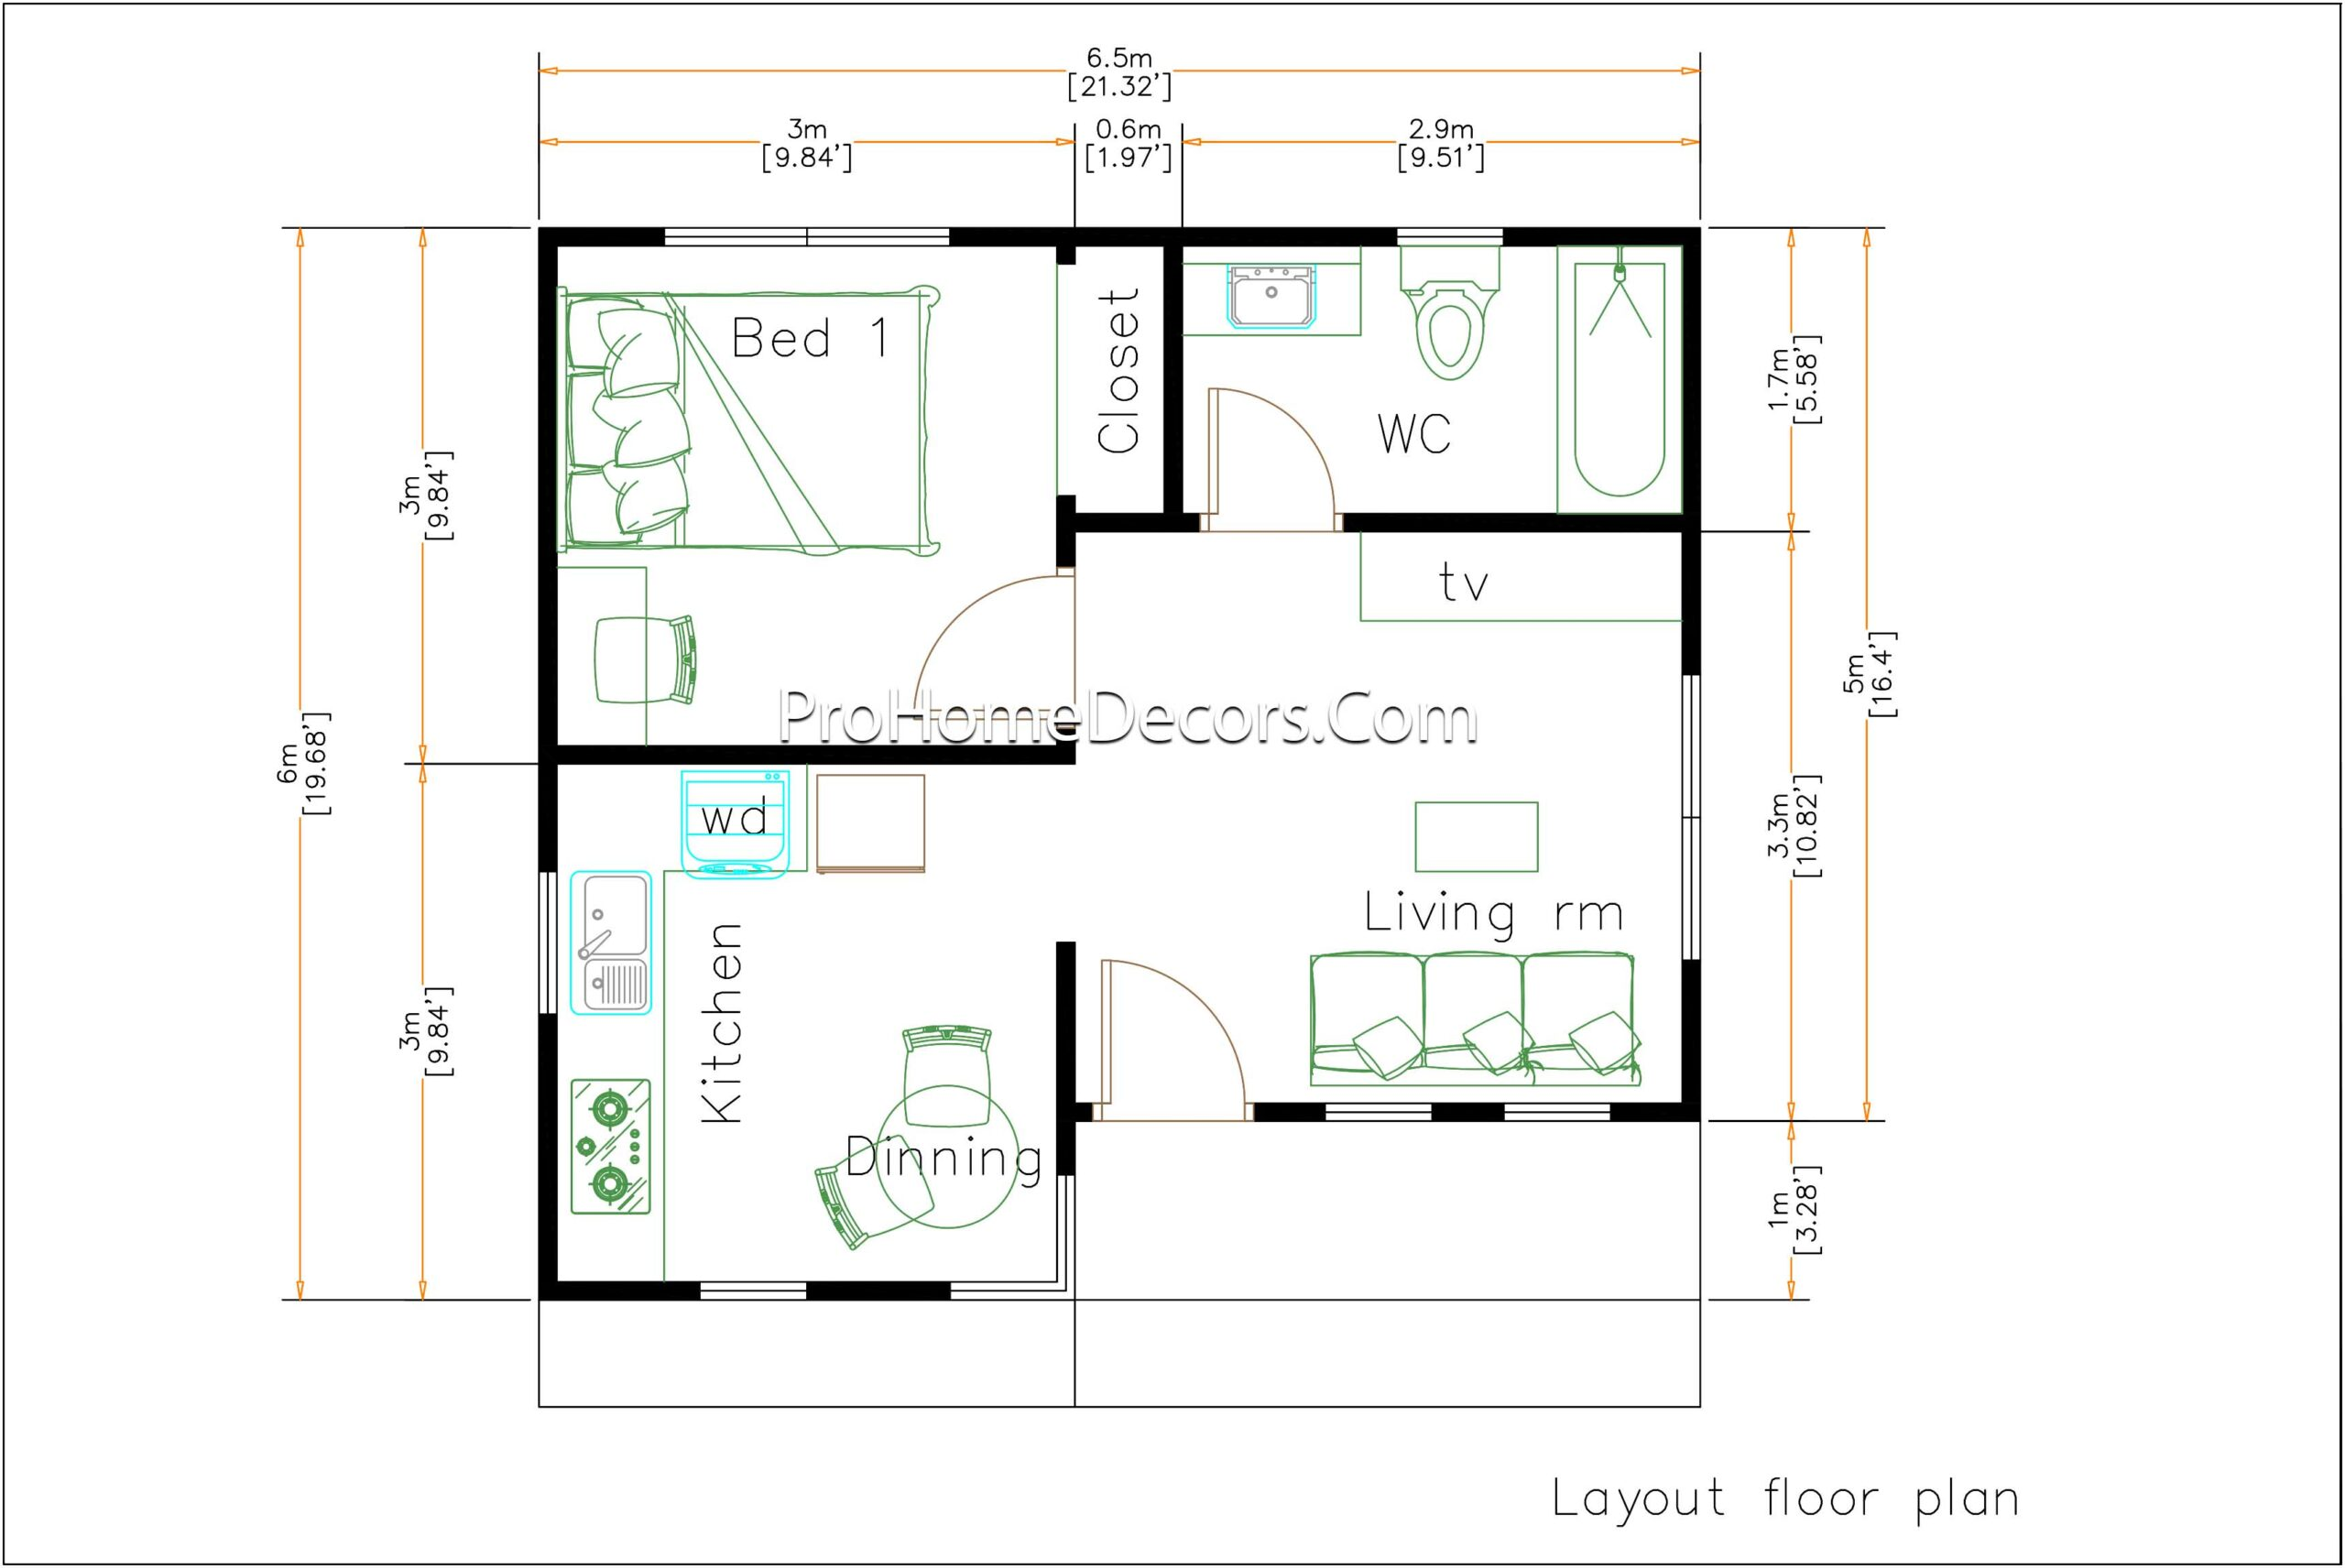 Small House Plans 6.5x6 Meter floor plan